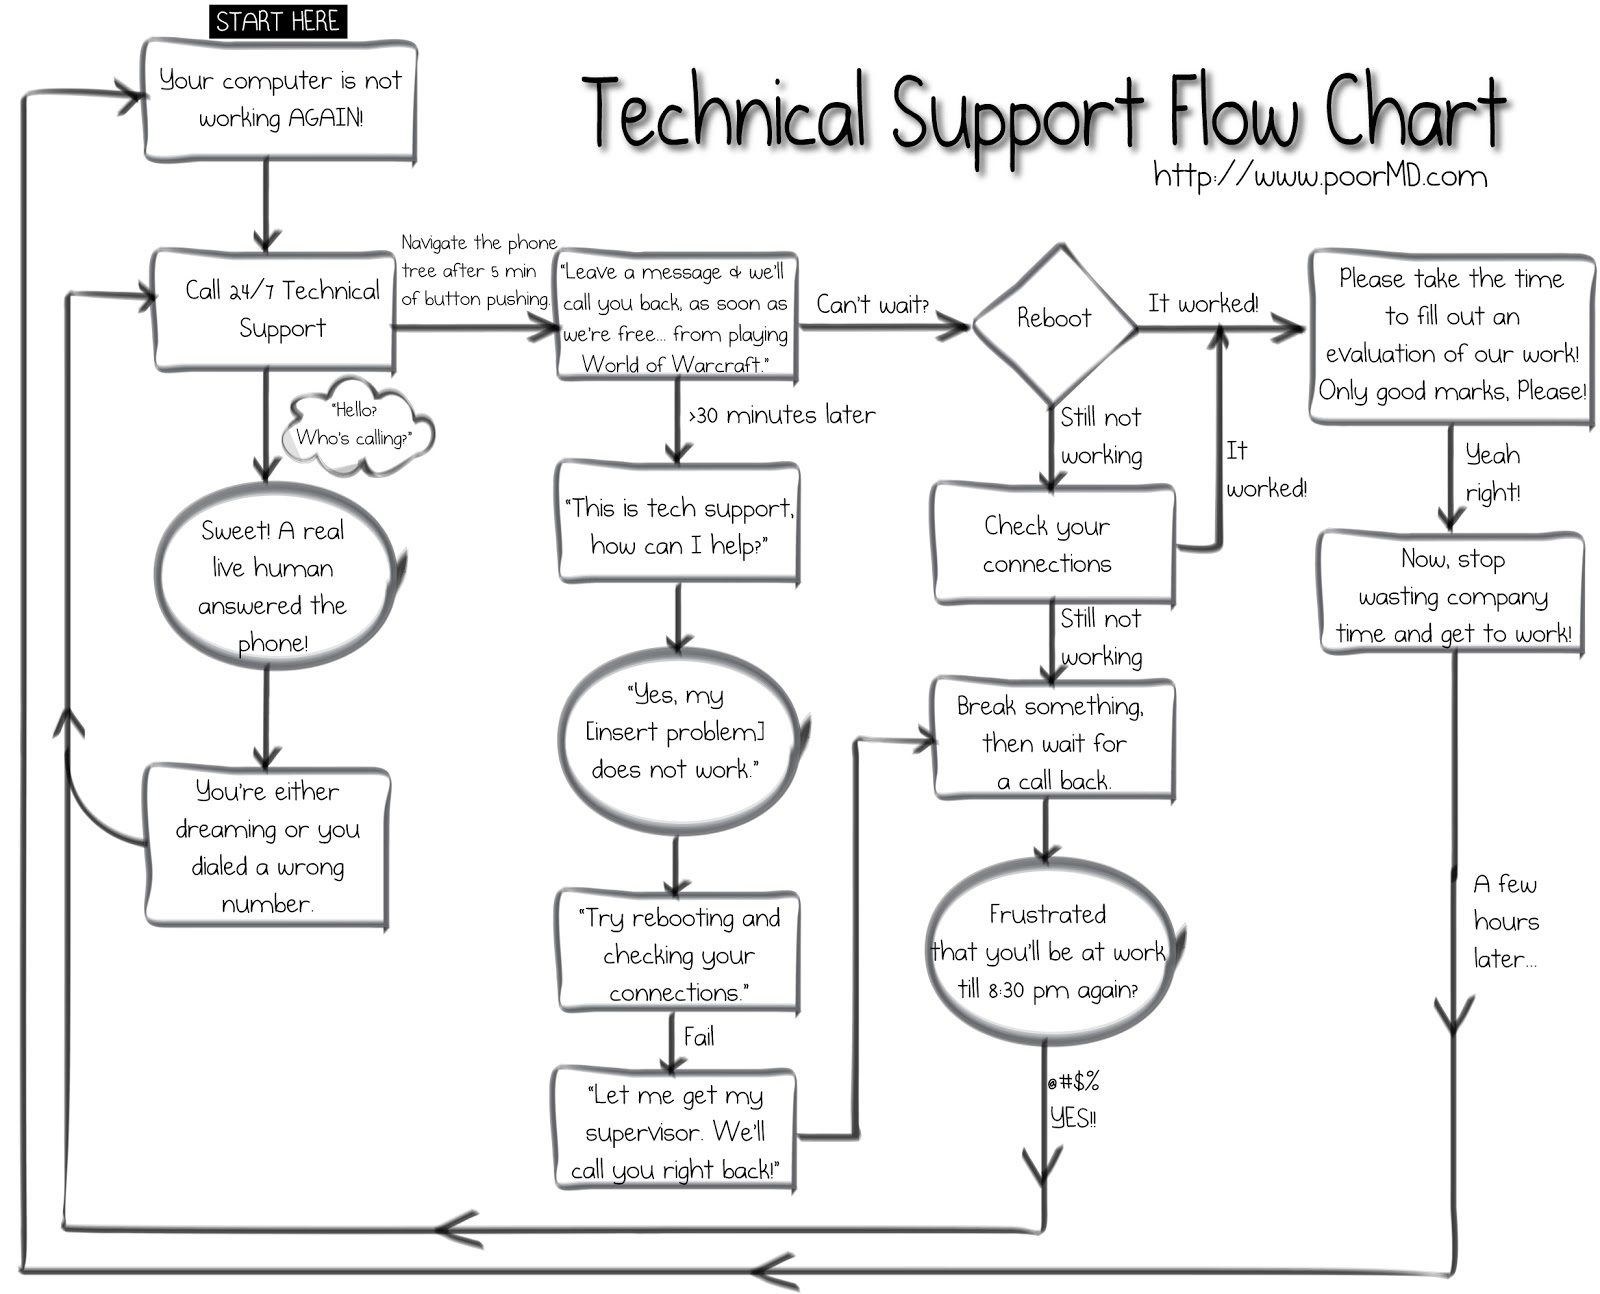 Drawn comics flow chart MD: Support Support Chart Technical